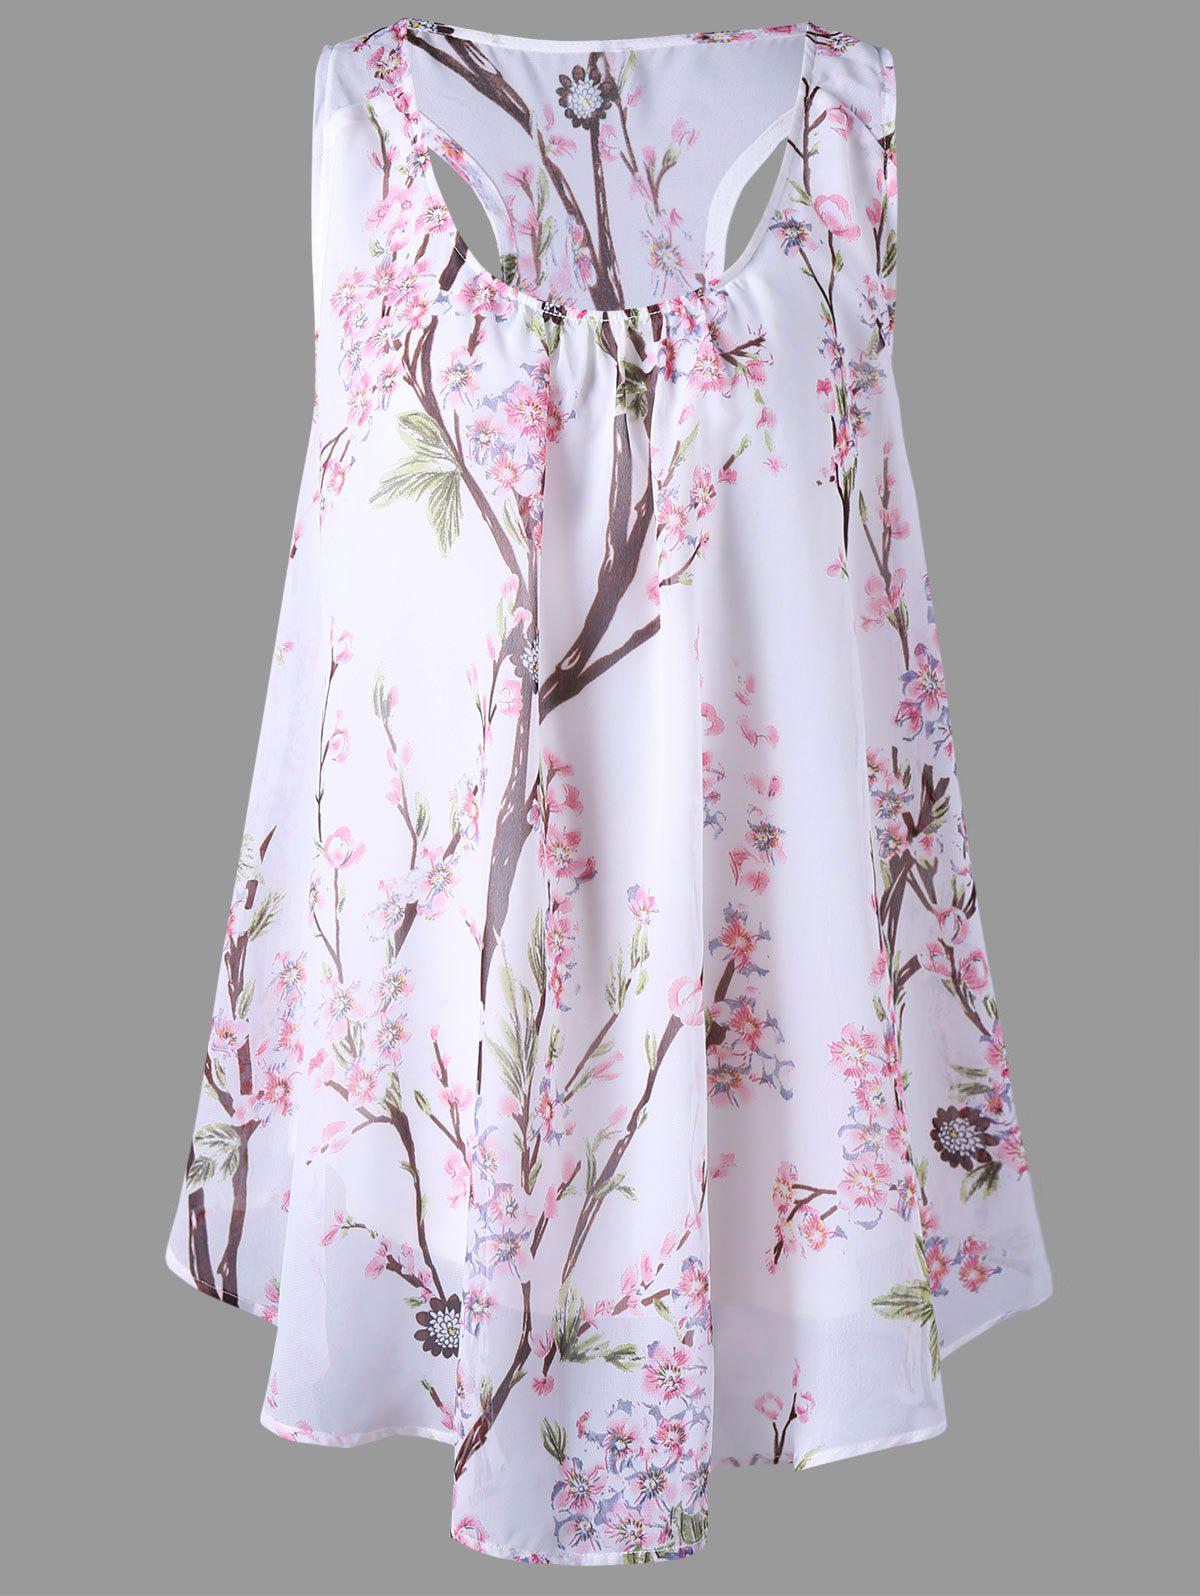 Tiny Floral Racerback Plus Size TopWOMEN<br><br>Size: 3XL; Color: WHITE; Material: Polyester; Shirt Length: Regular; Sleeve Length: Sleeveless; Collar: U Neck; Style: Casual; Season: Summer; Pattern Type: Floral; Weight: 0.2200kg; Package Contents: 1 x Top;